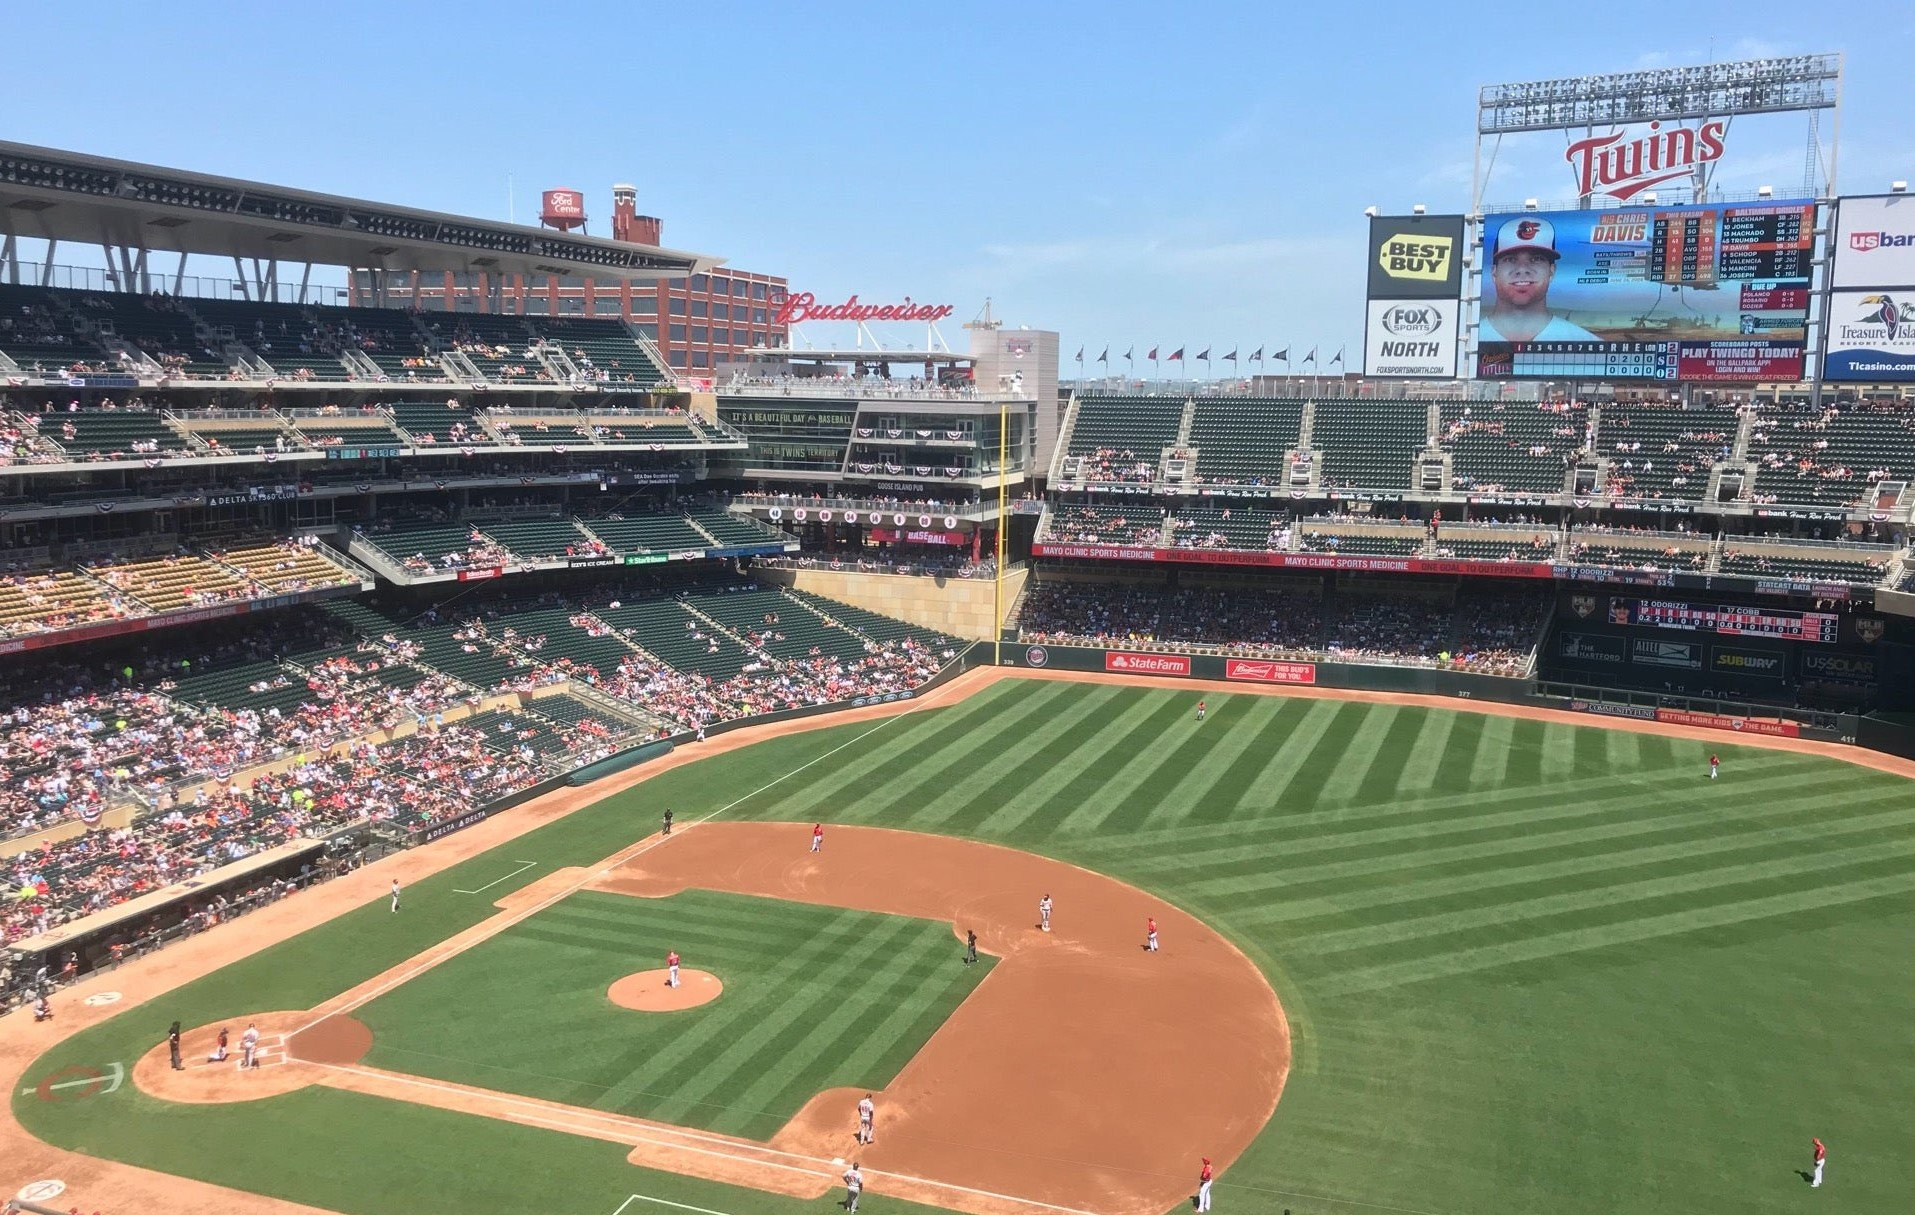 sunny day game at Target Field